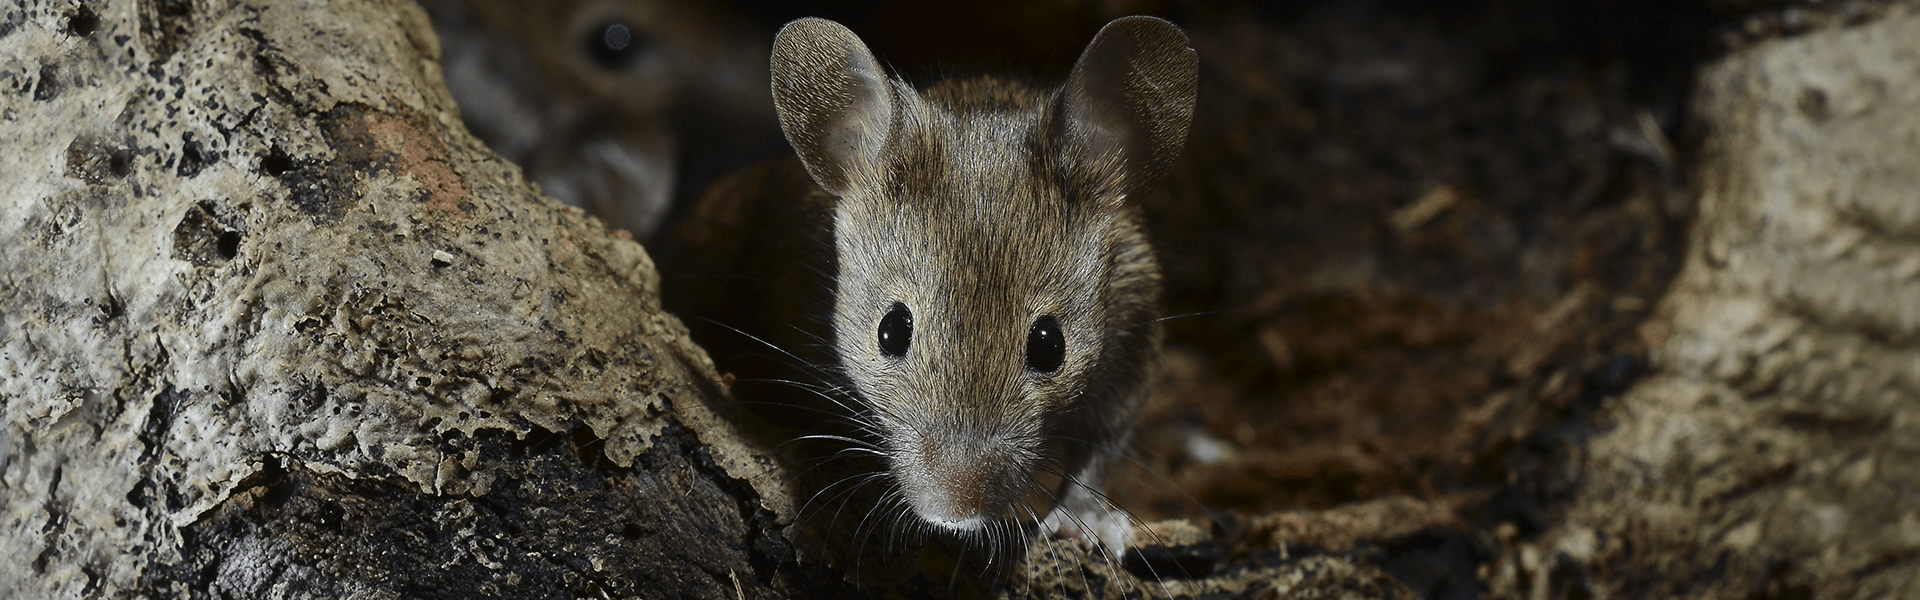 rats & Mice Truly Green Pest Control